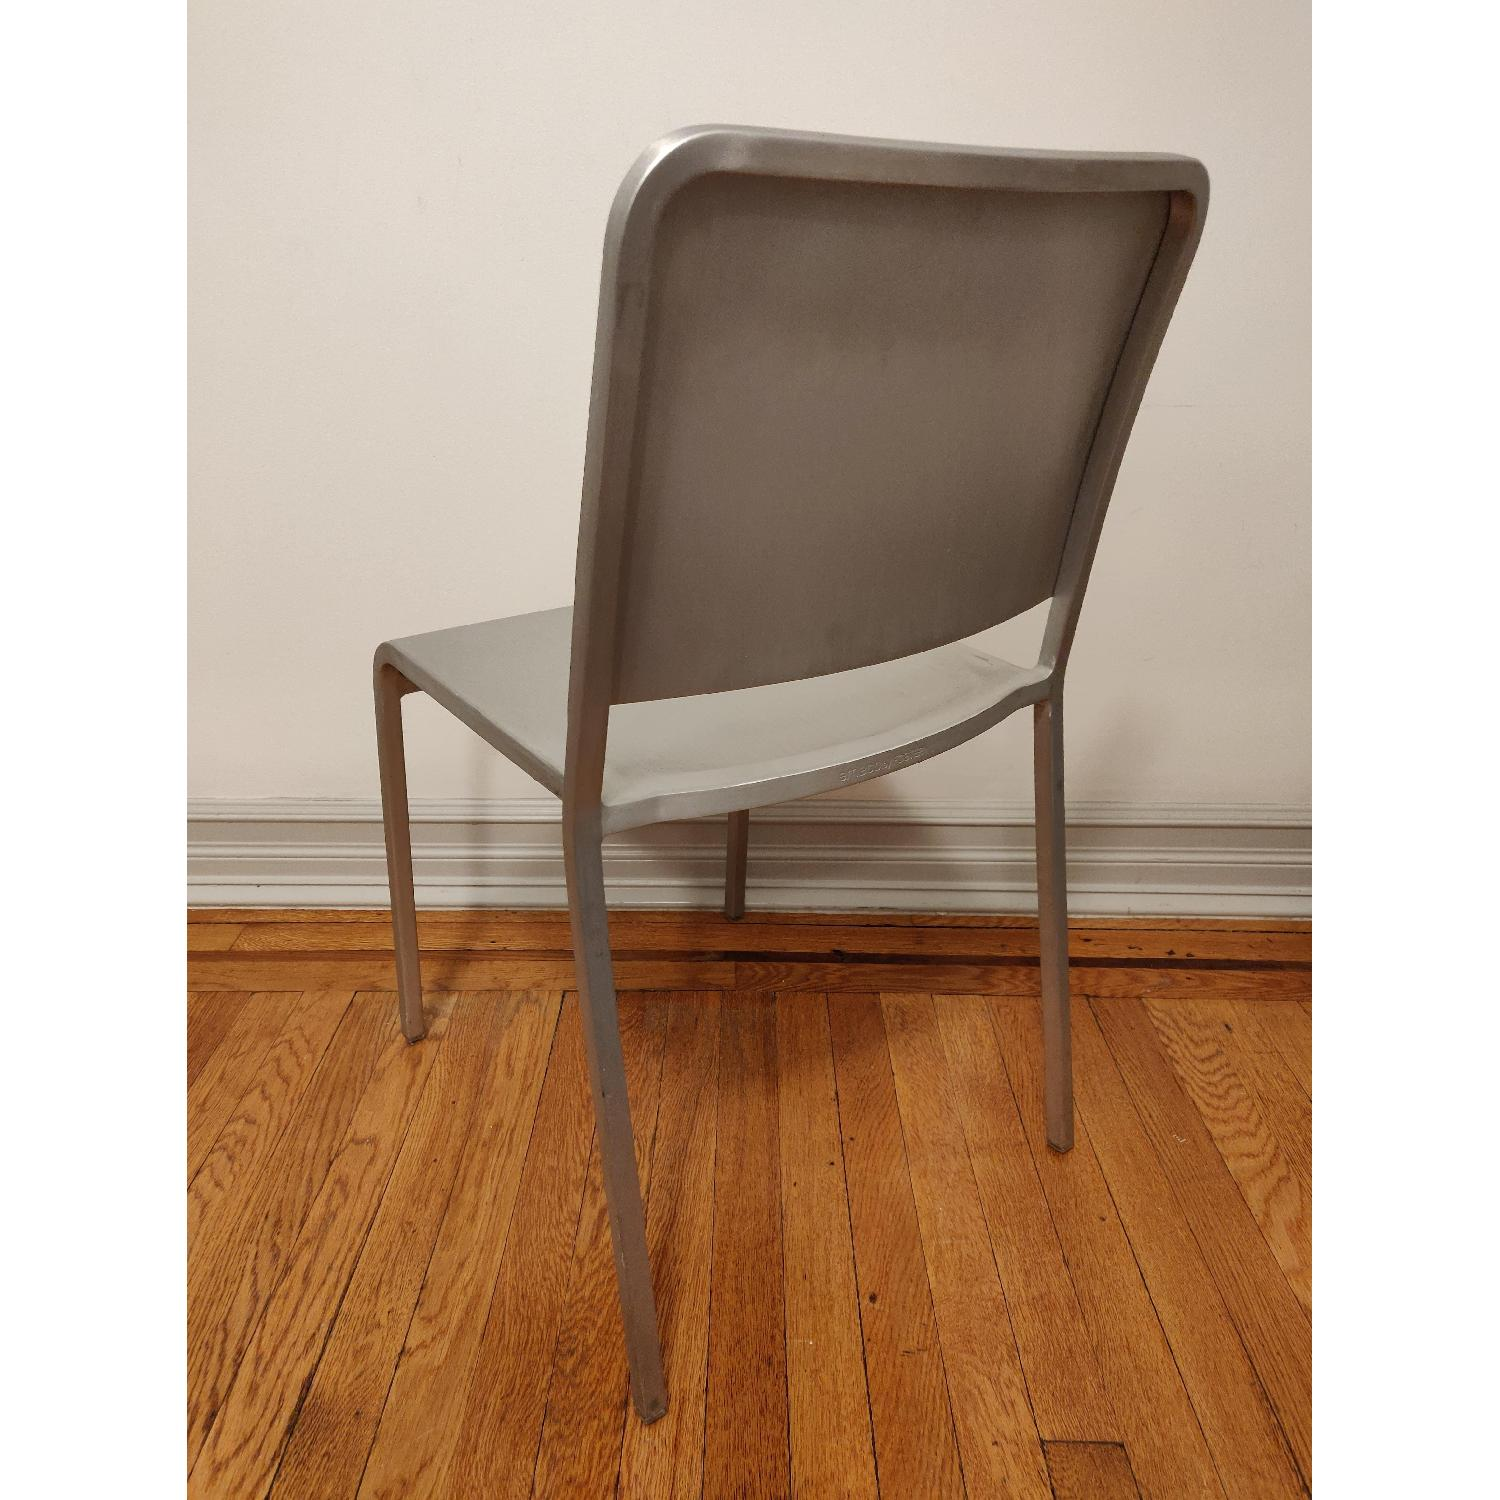 Emeco 20-06 Chairs by Norman Foster - image-6